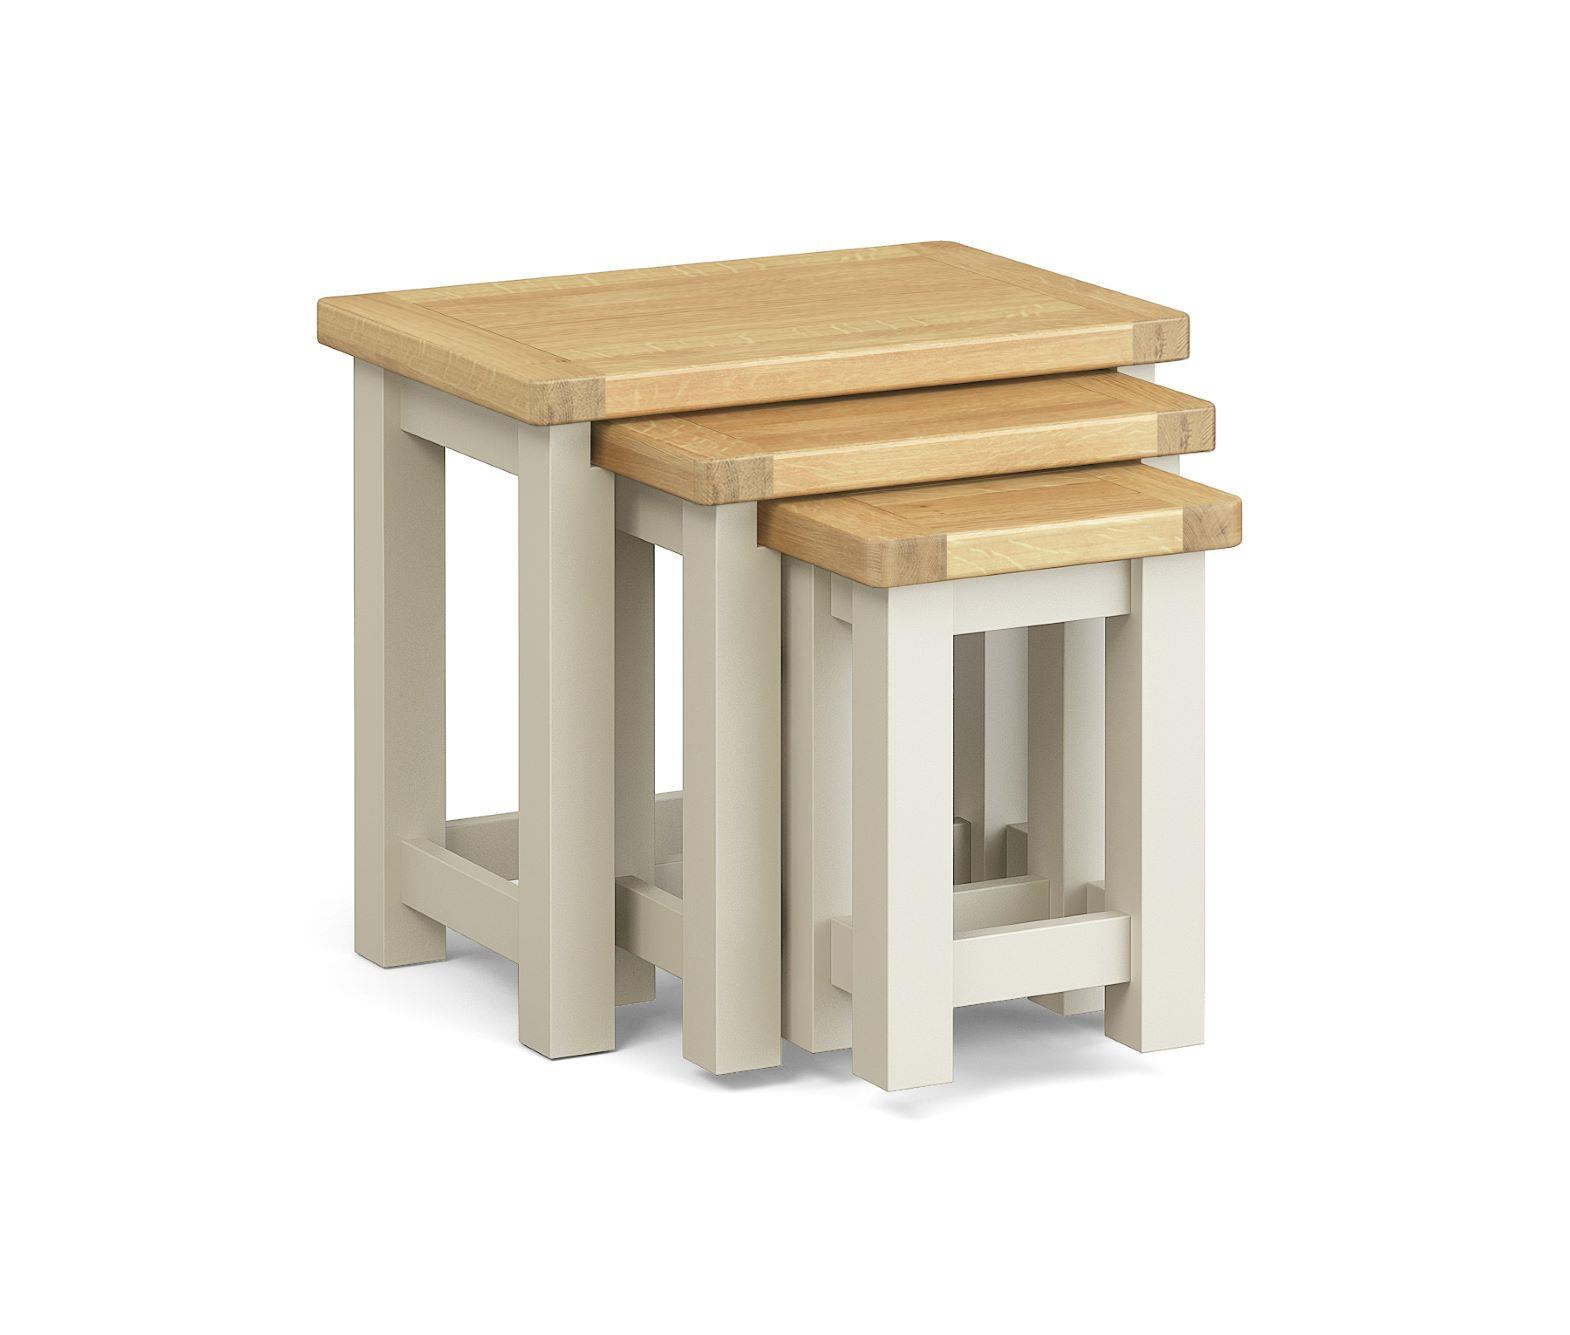 SOMERSET Nest of Tables by Corndell